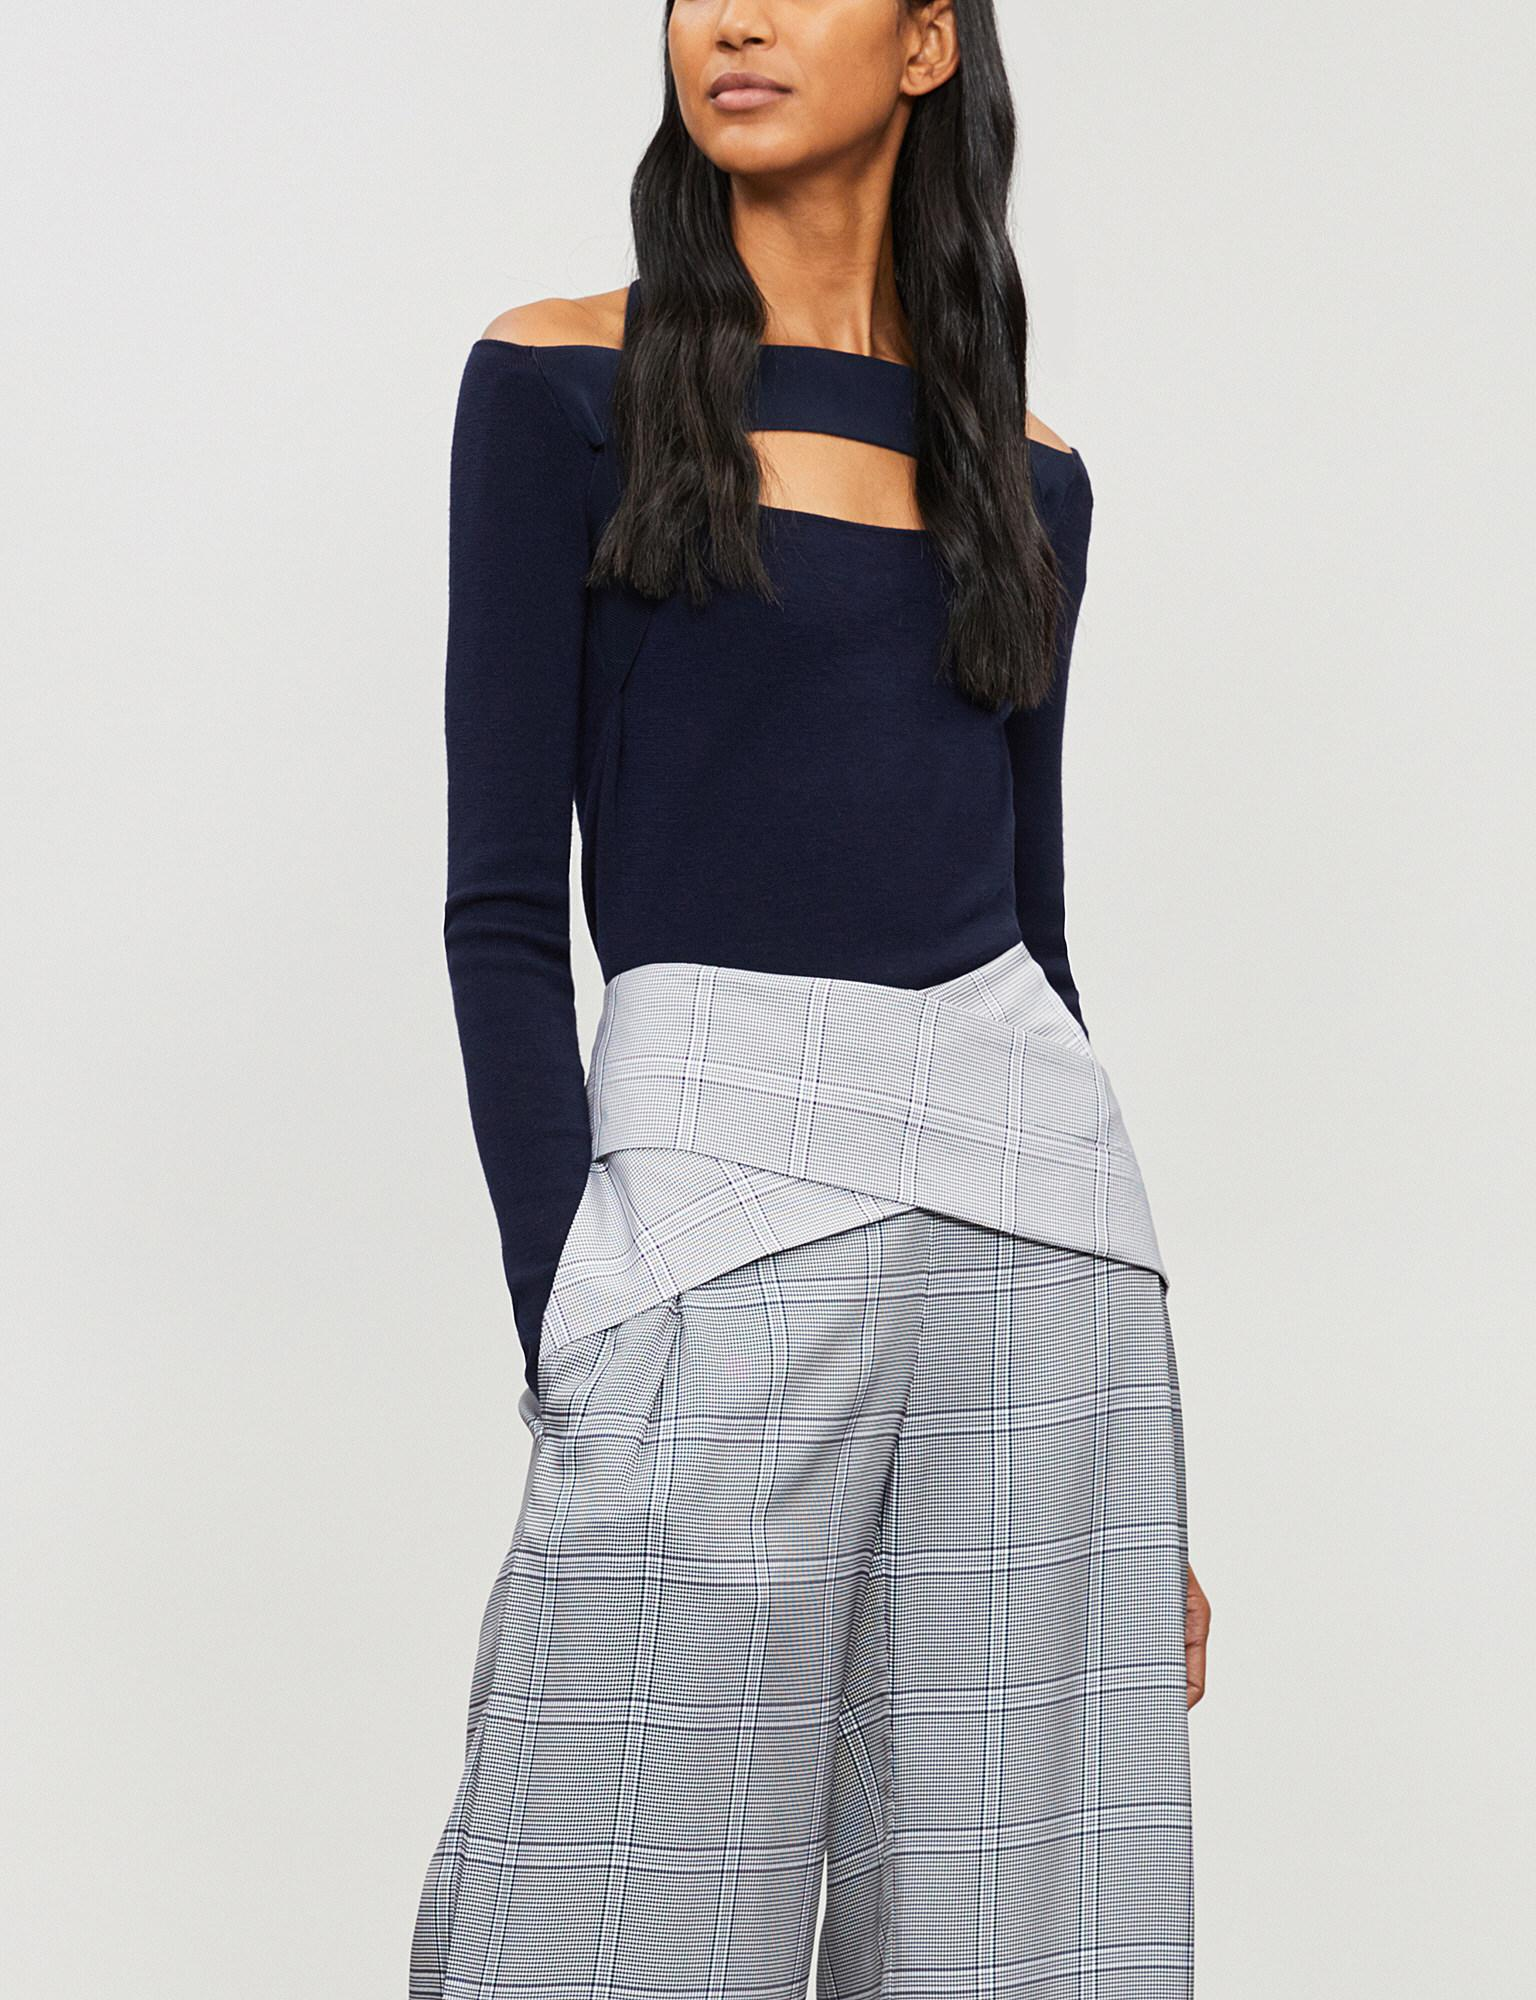 806de14ed05 Dion Lee Off-the-shoulder Cutout Wool Top in Blue - Lyst